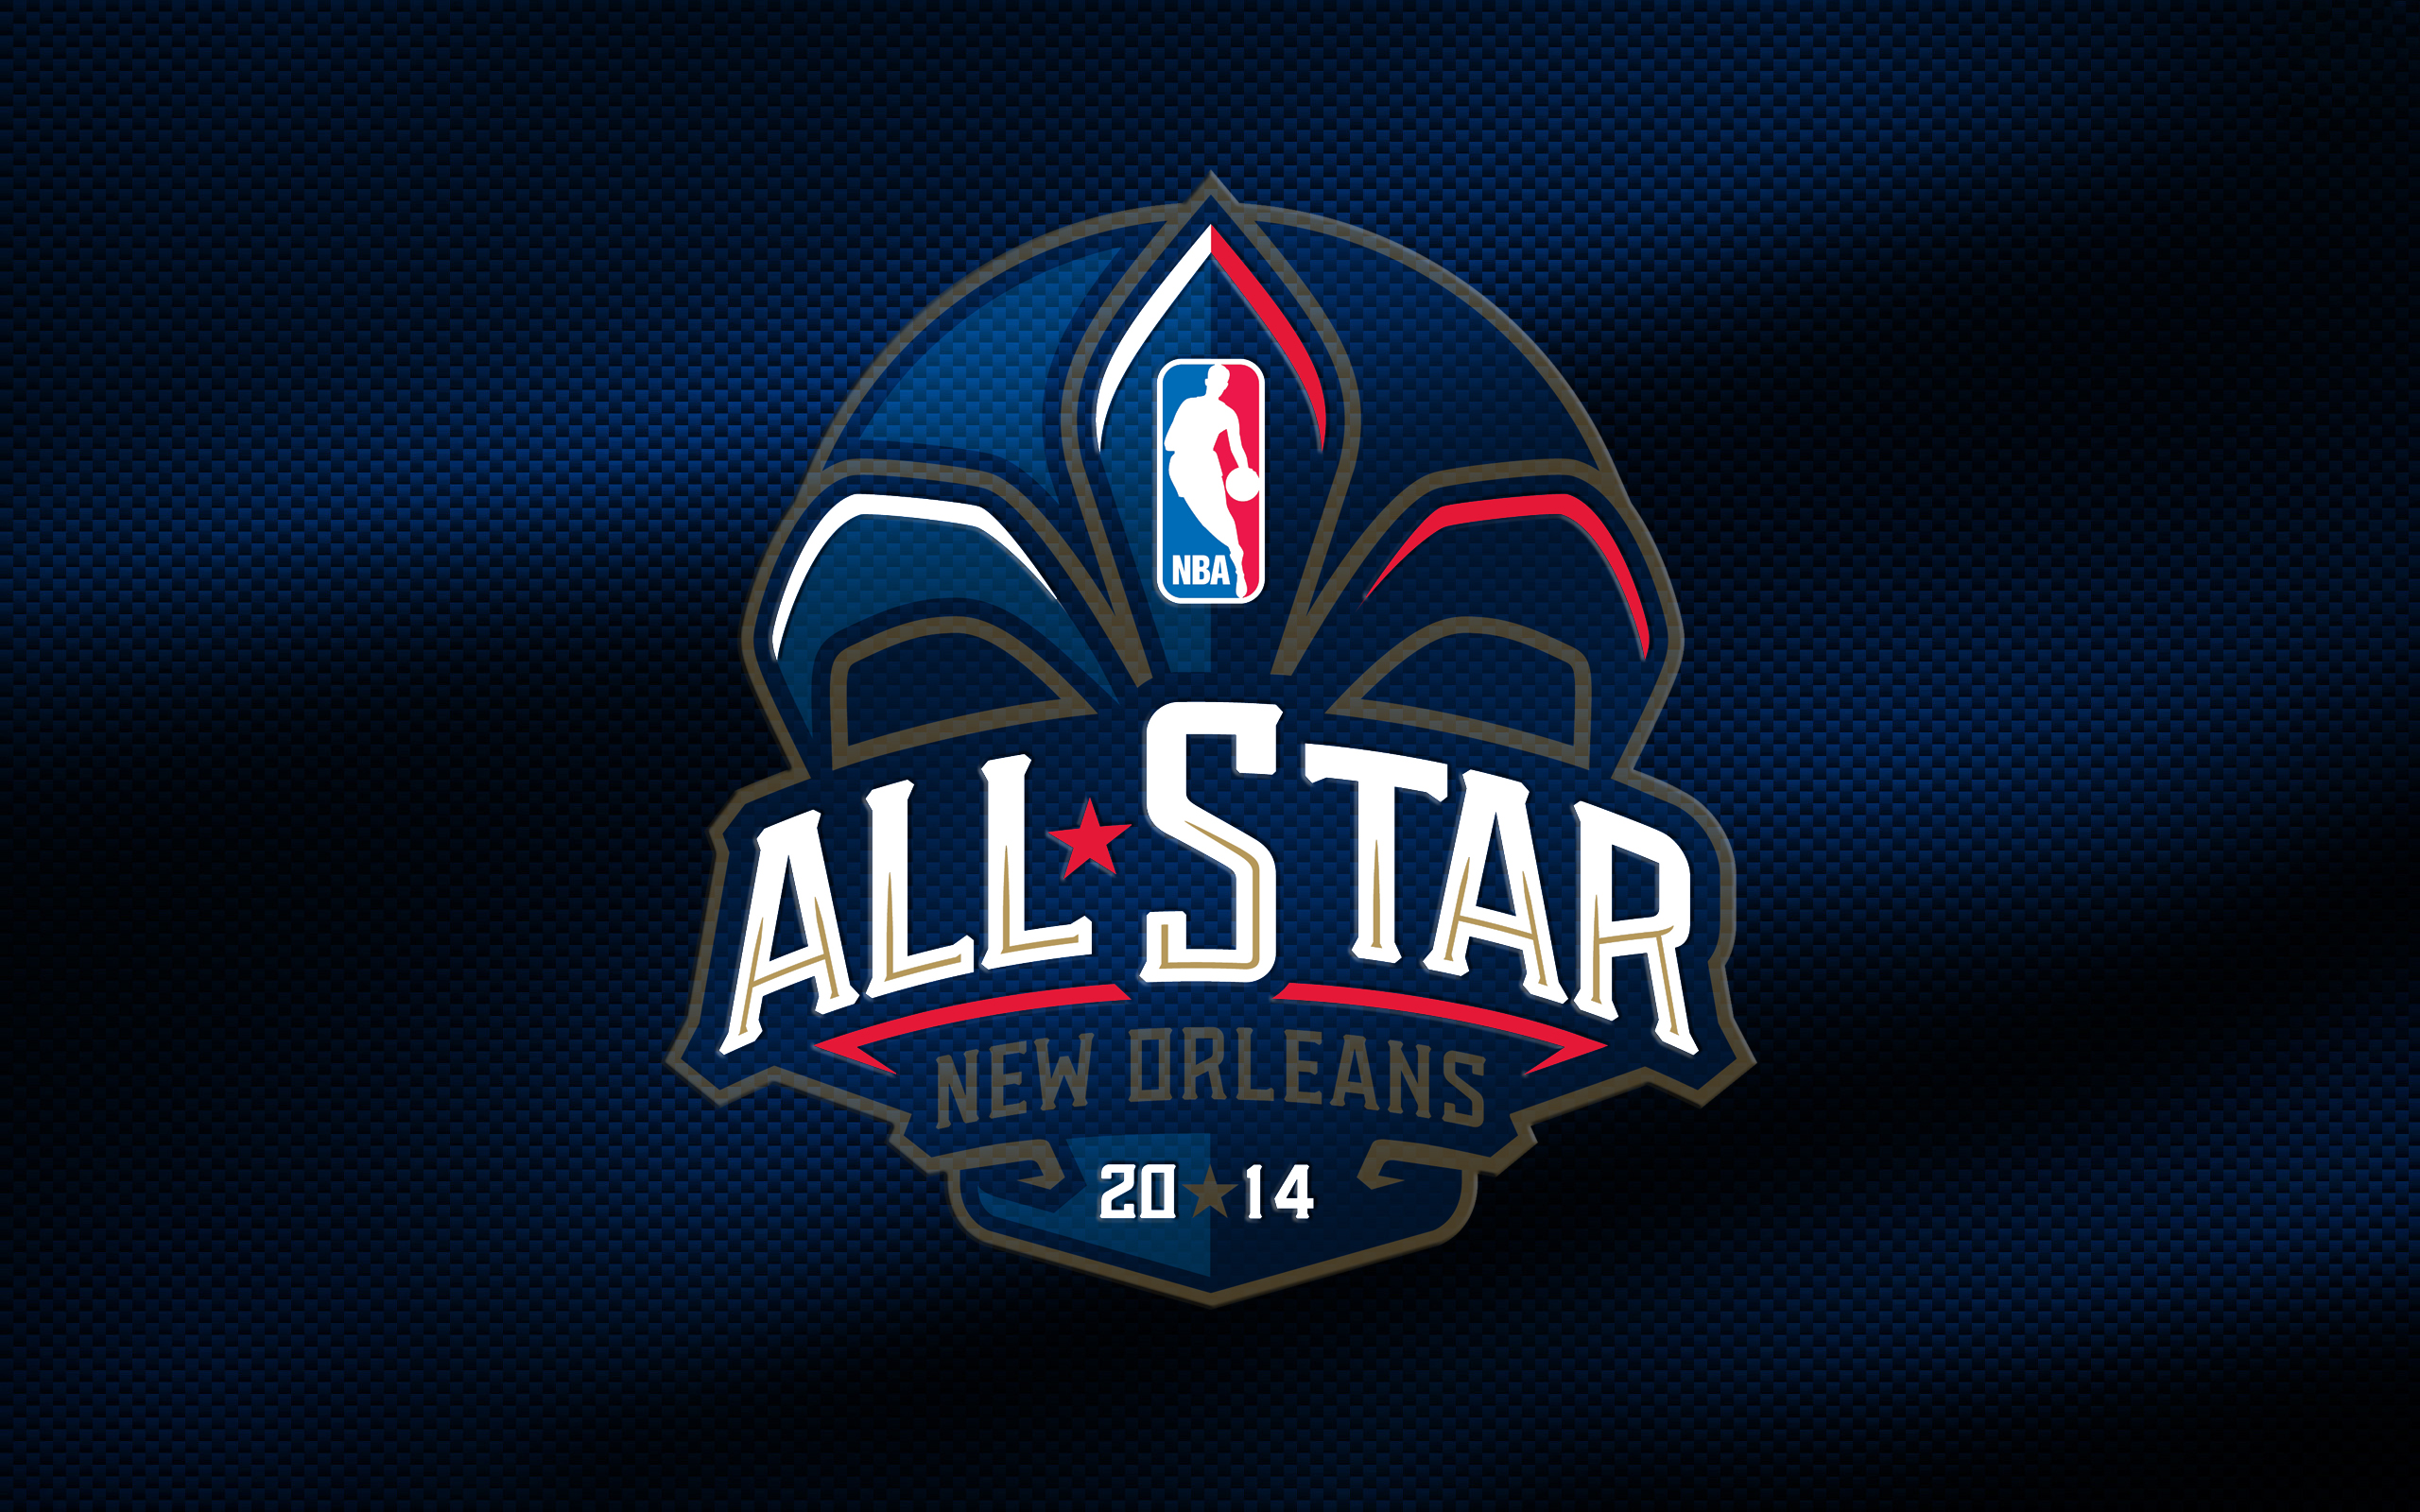 2014 all star game nba